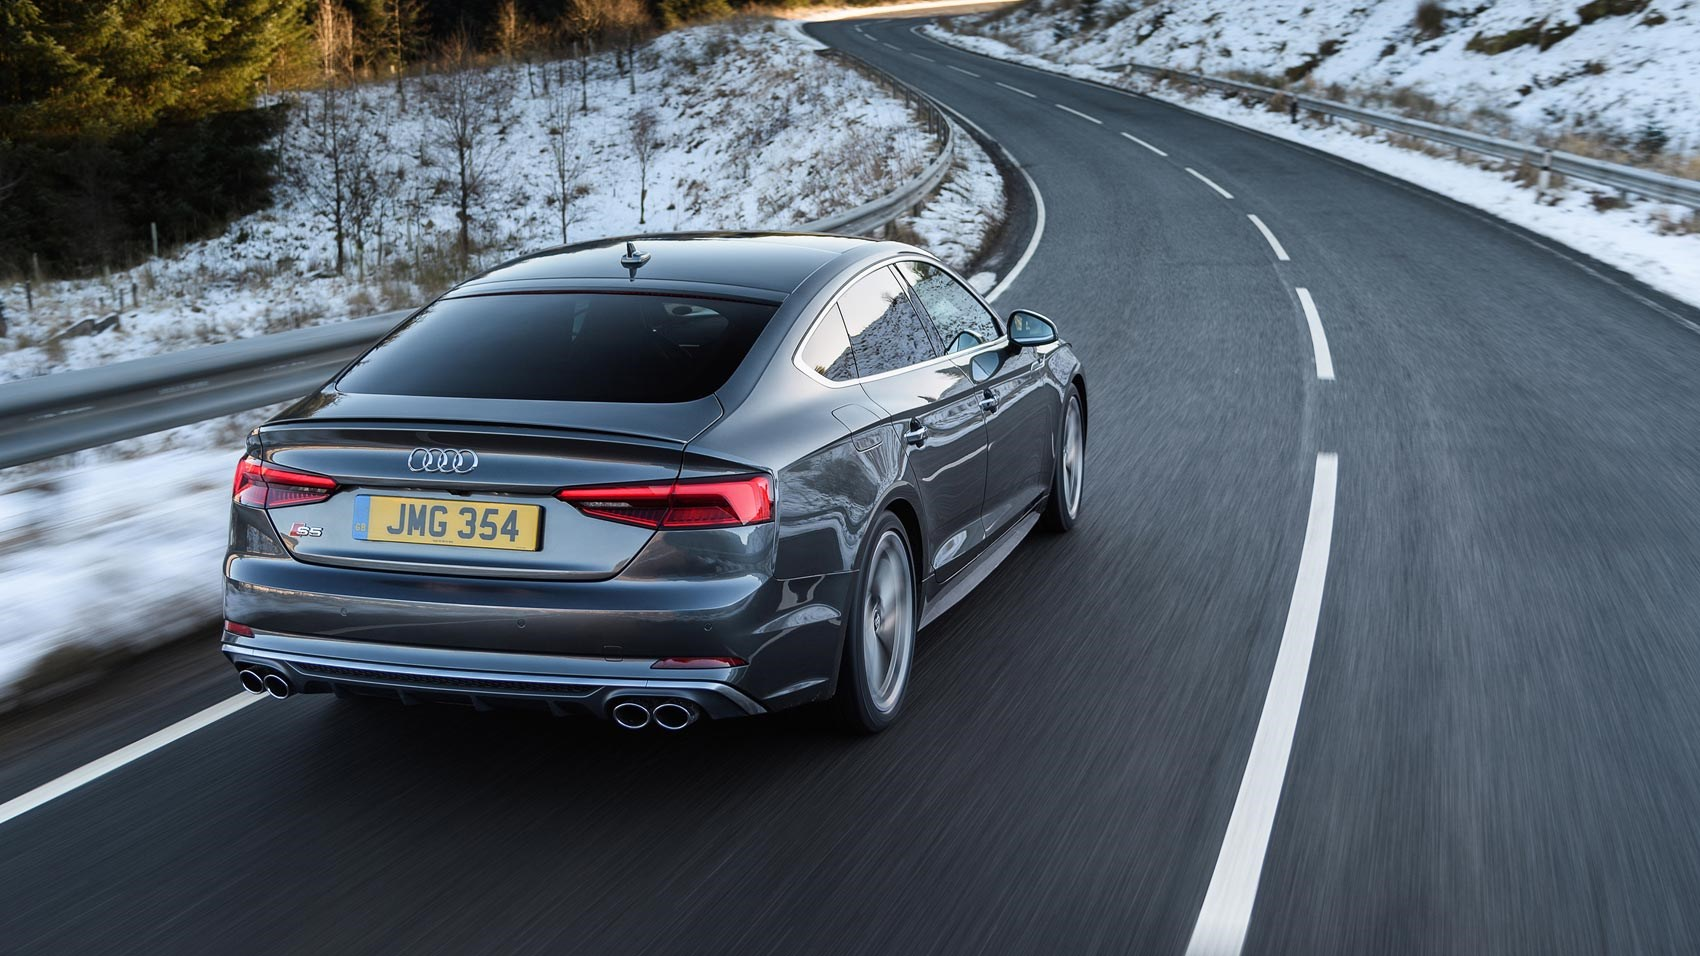 Audi s5 sportback 2017 review by car magazine - Audi S5 Sportback 2017 Review By Car Magazine 4